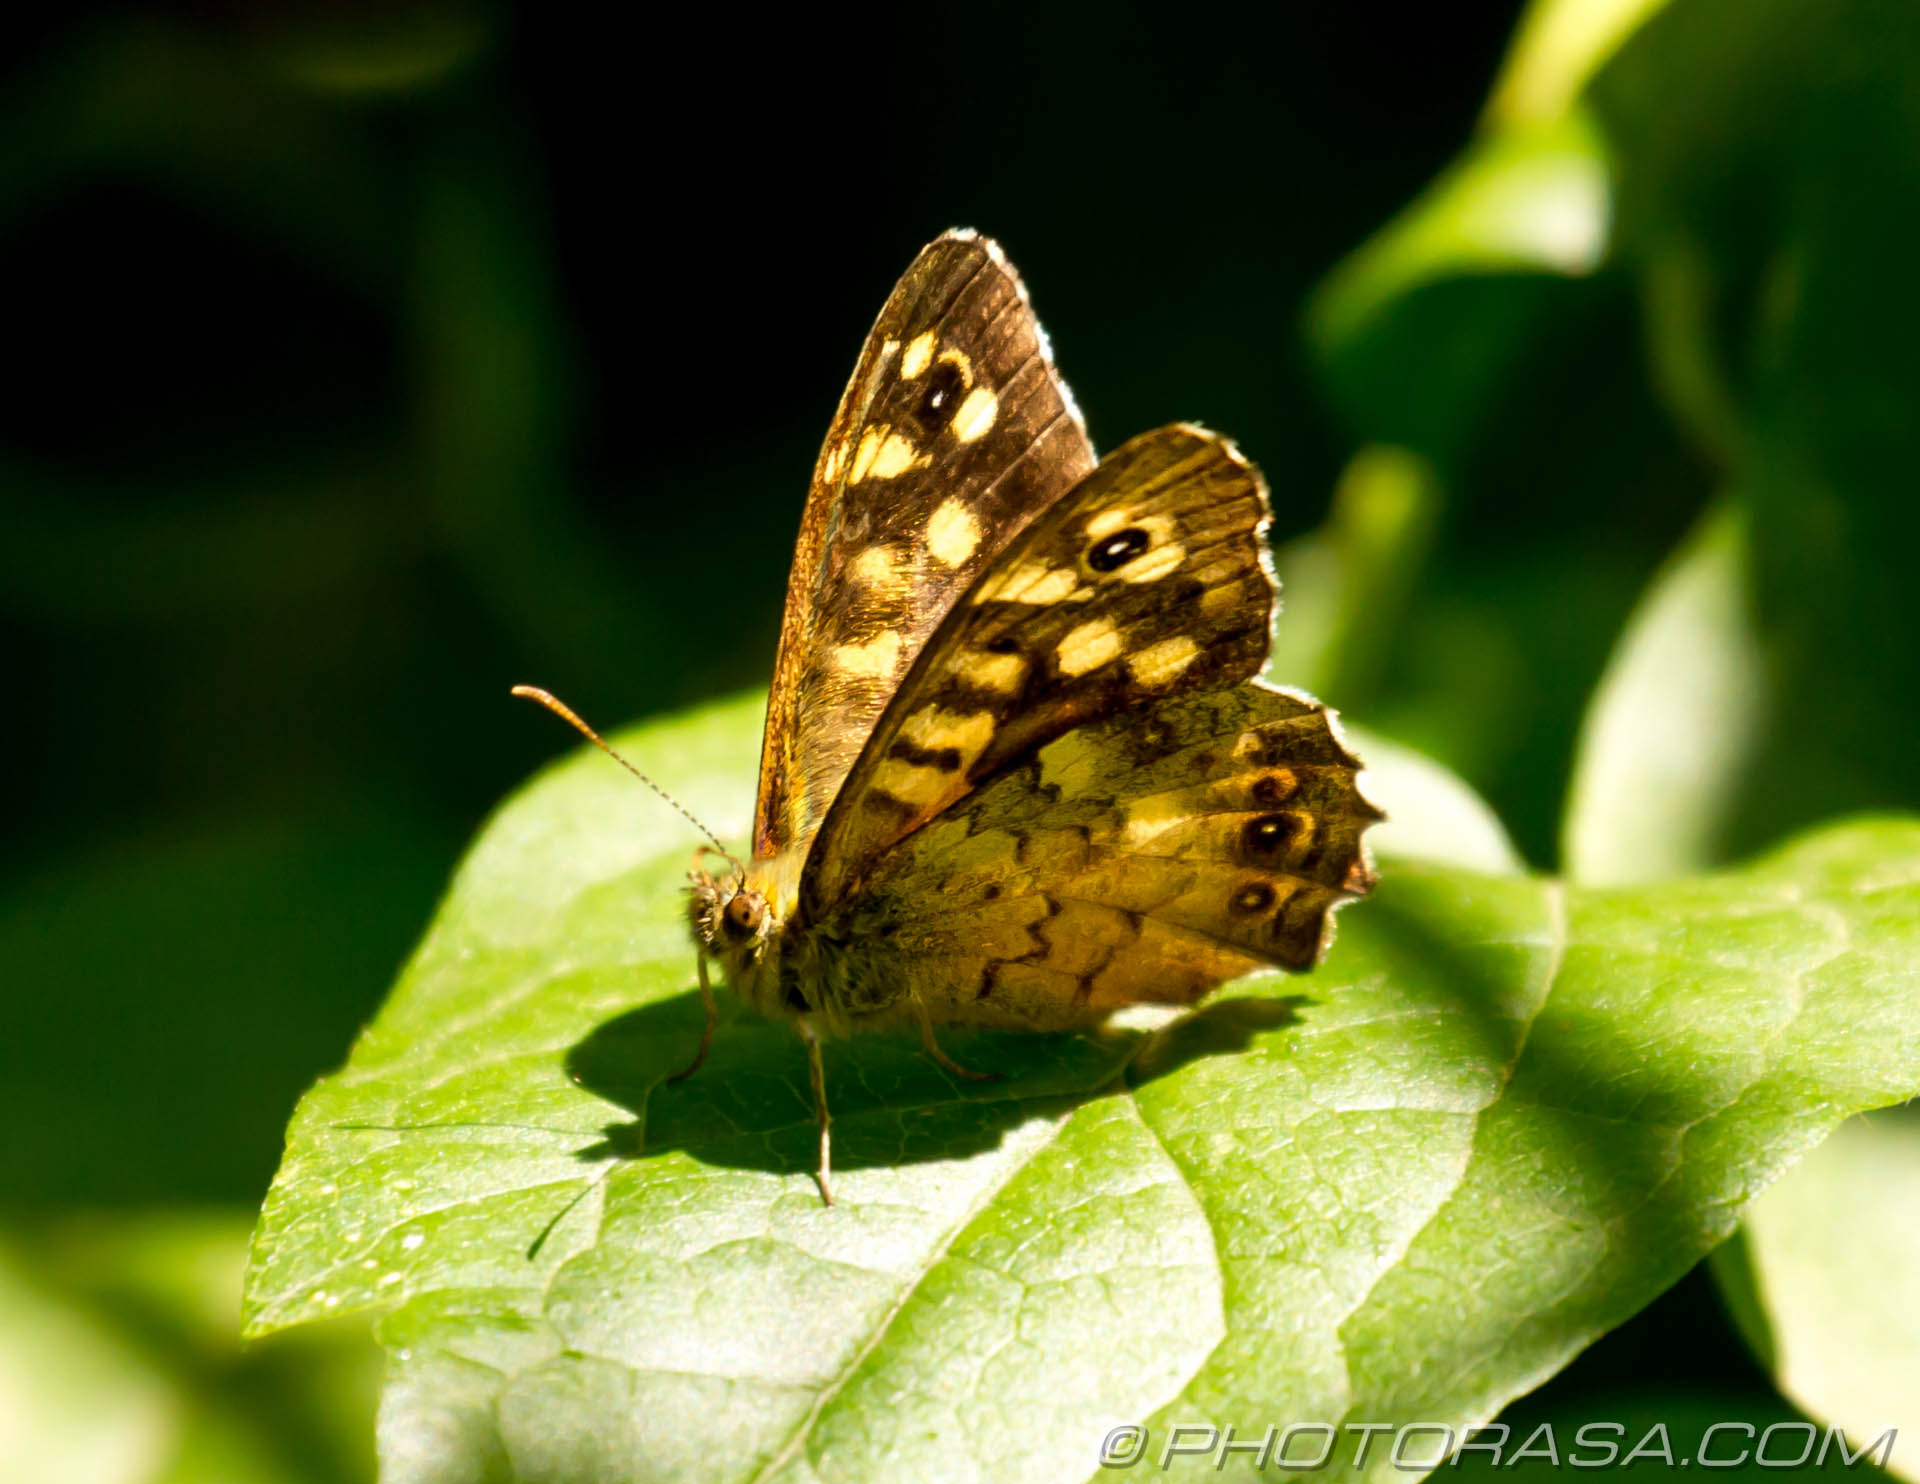 http://photorasa.com/speckled-wood-butterfly/speckled-wood-in-sunlight/